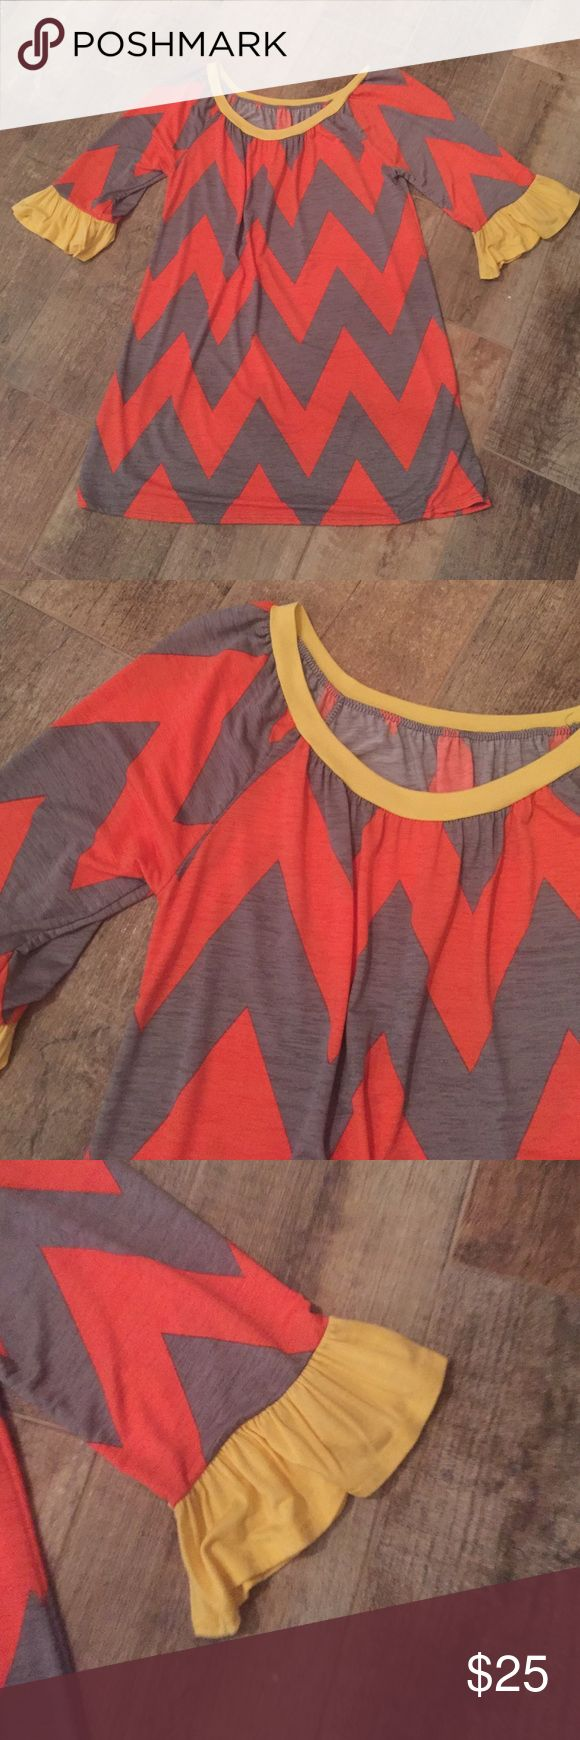 NWOT Chevron top NWOT. This has never been worn. No holes or stains. Super cute top. Tops Tunics